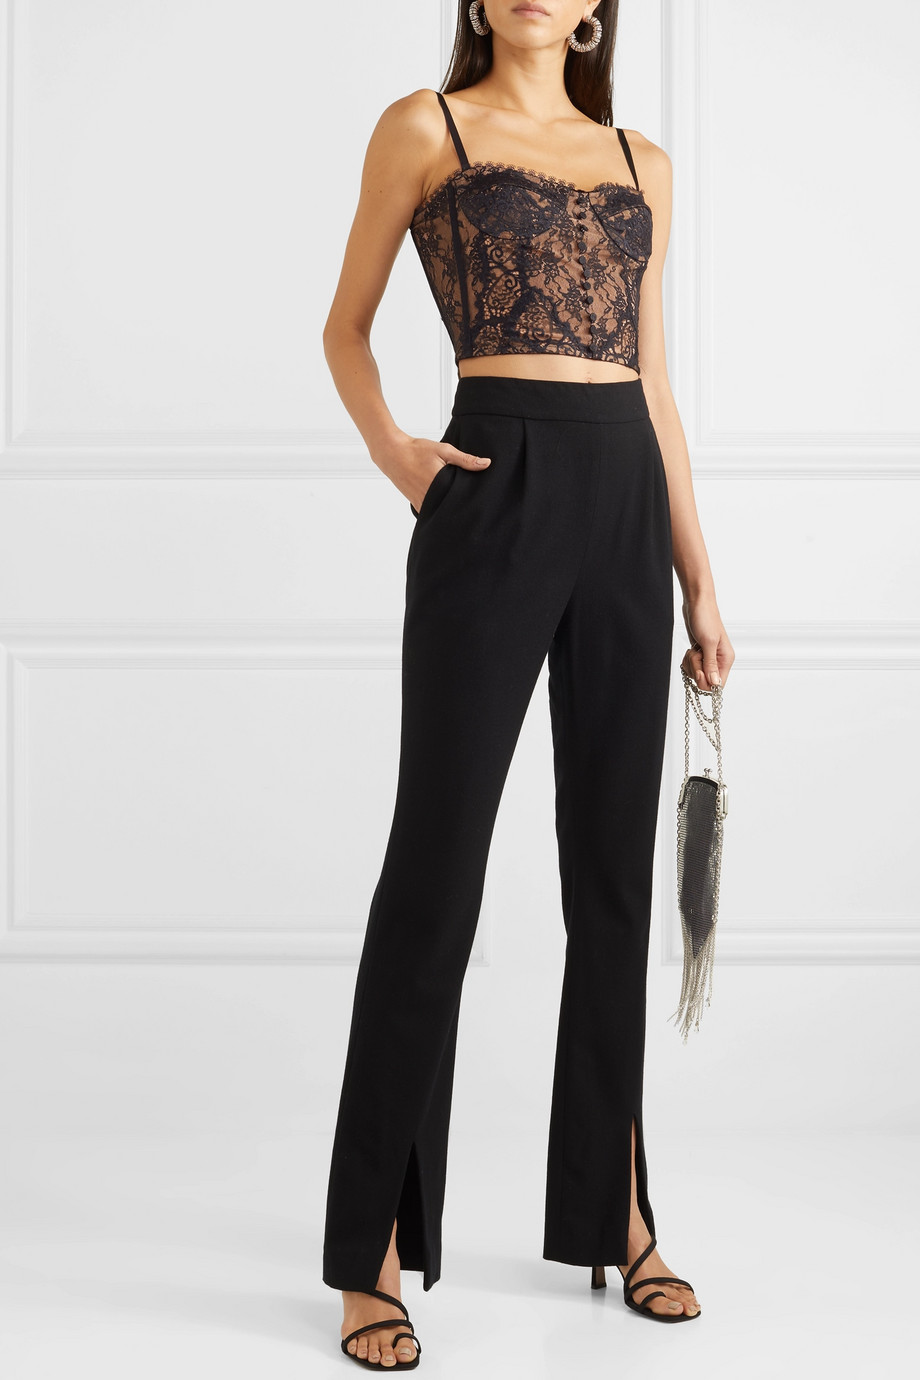 Jonathan Simkhai Cropped  satin-trimmed lace bustier top